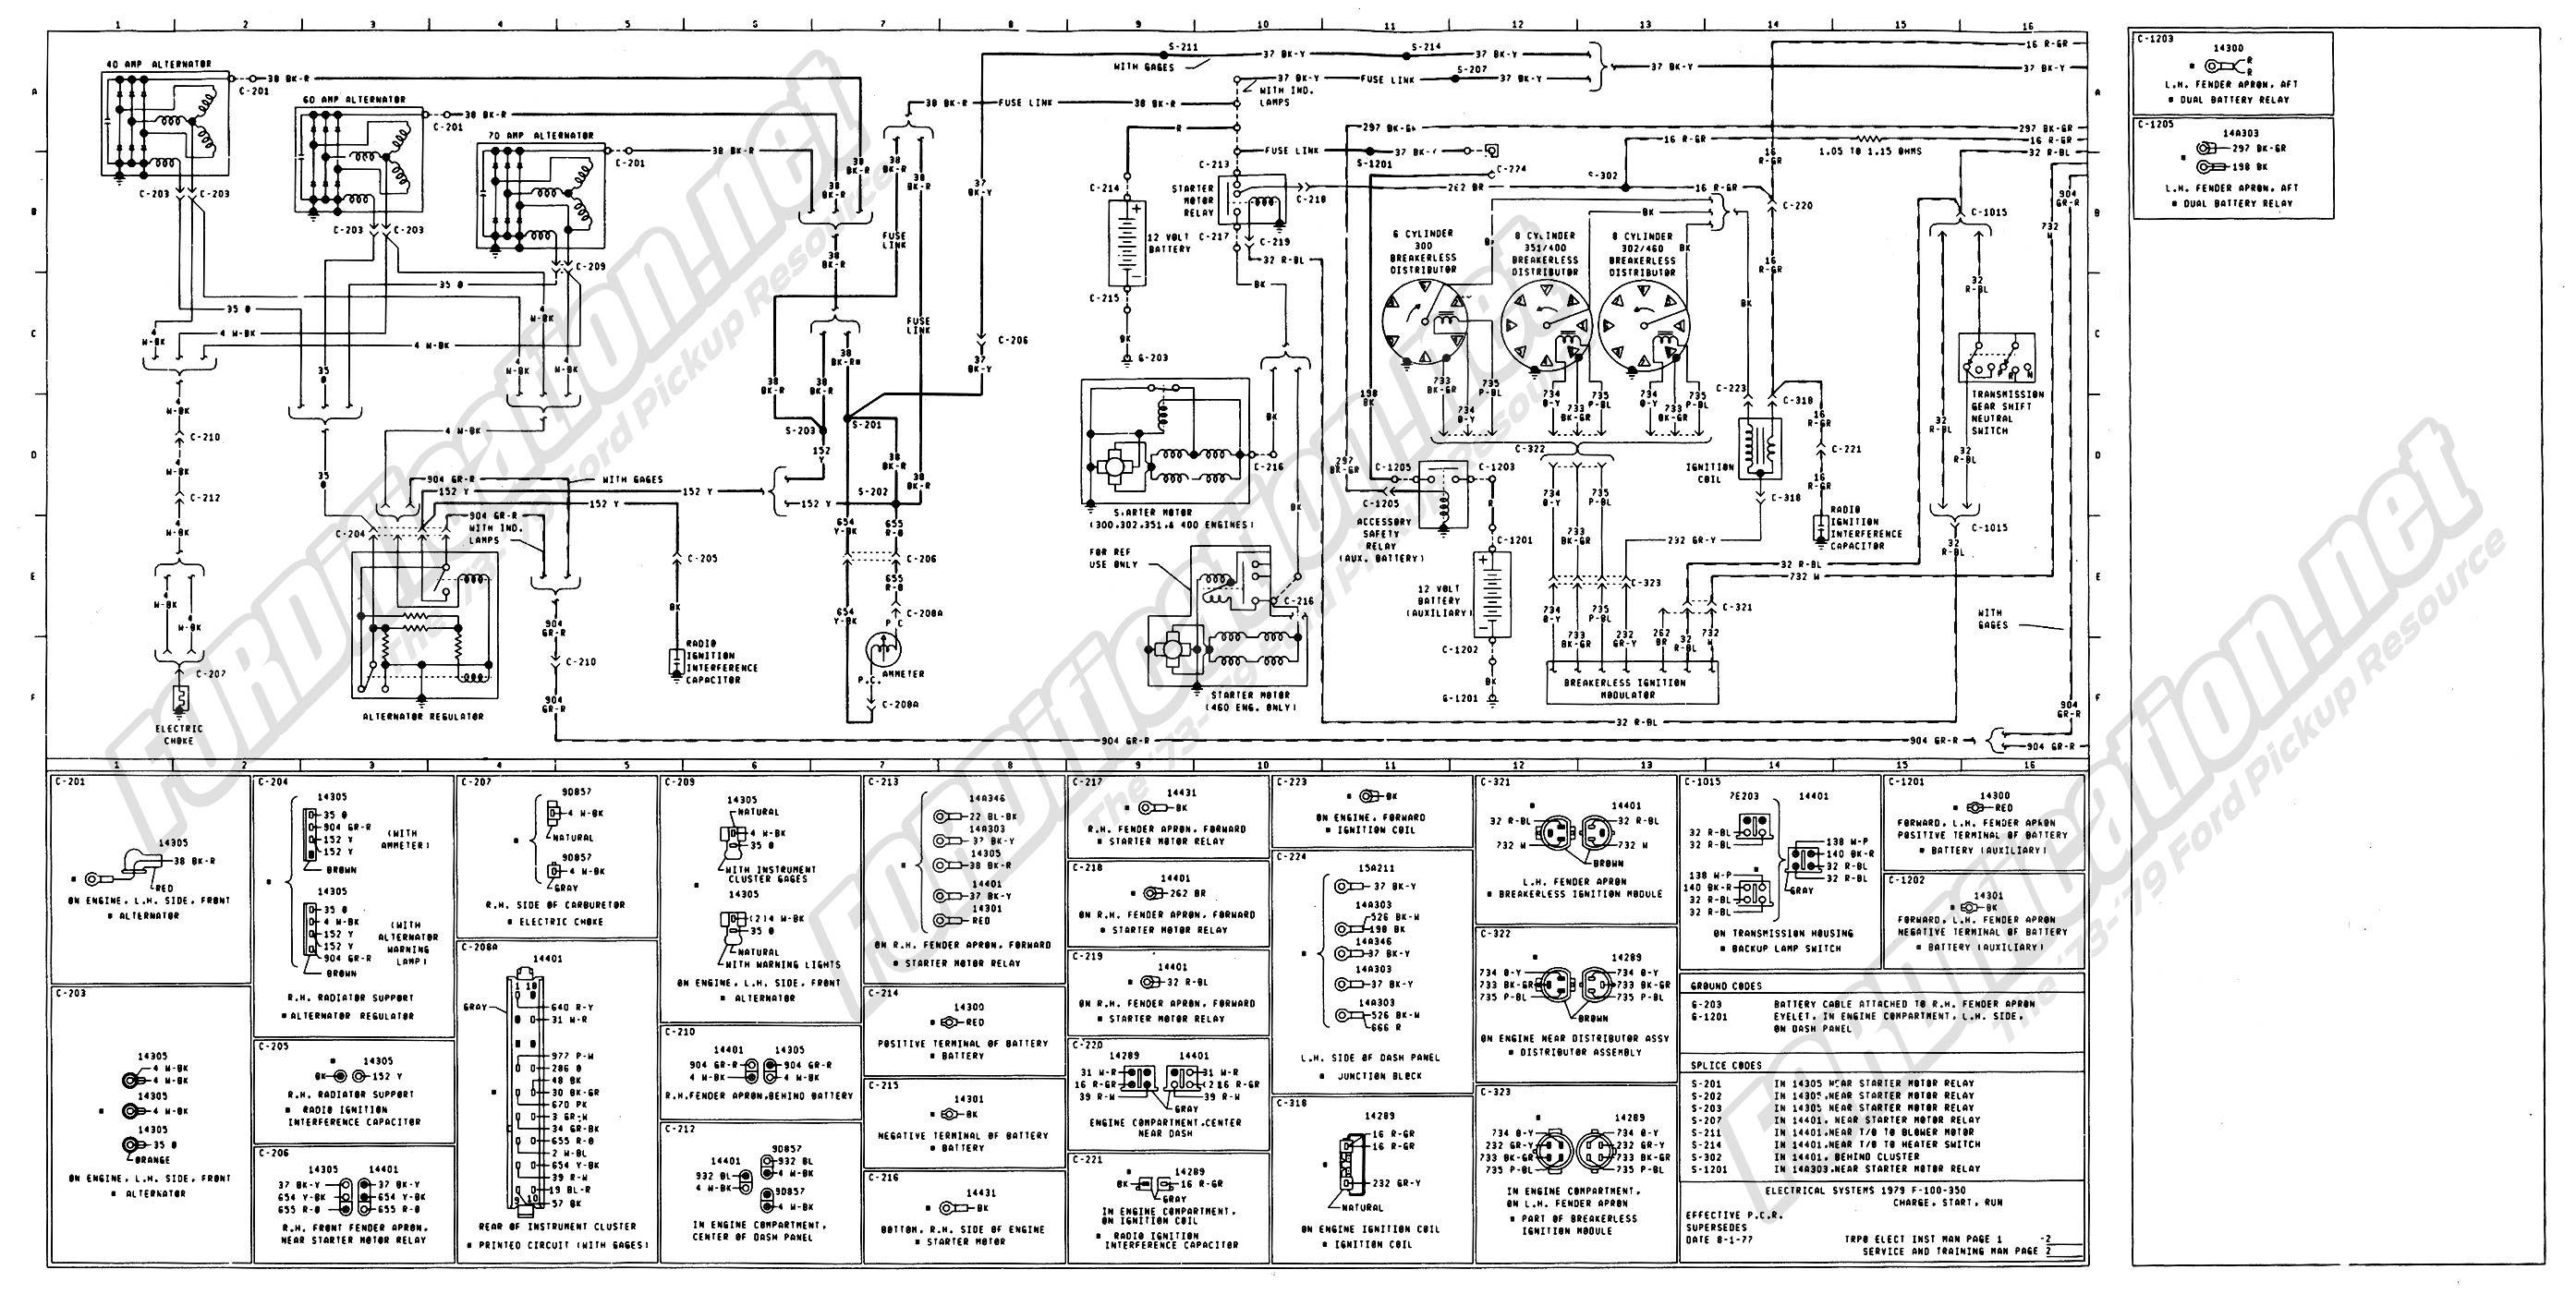 1998 Ford F150 Radio Wiring Diagram from www.fordification.net